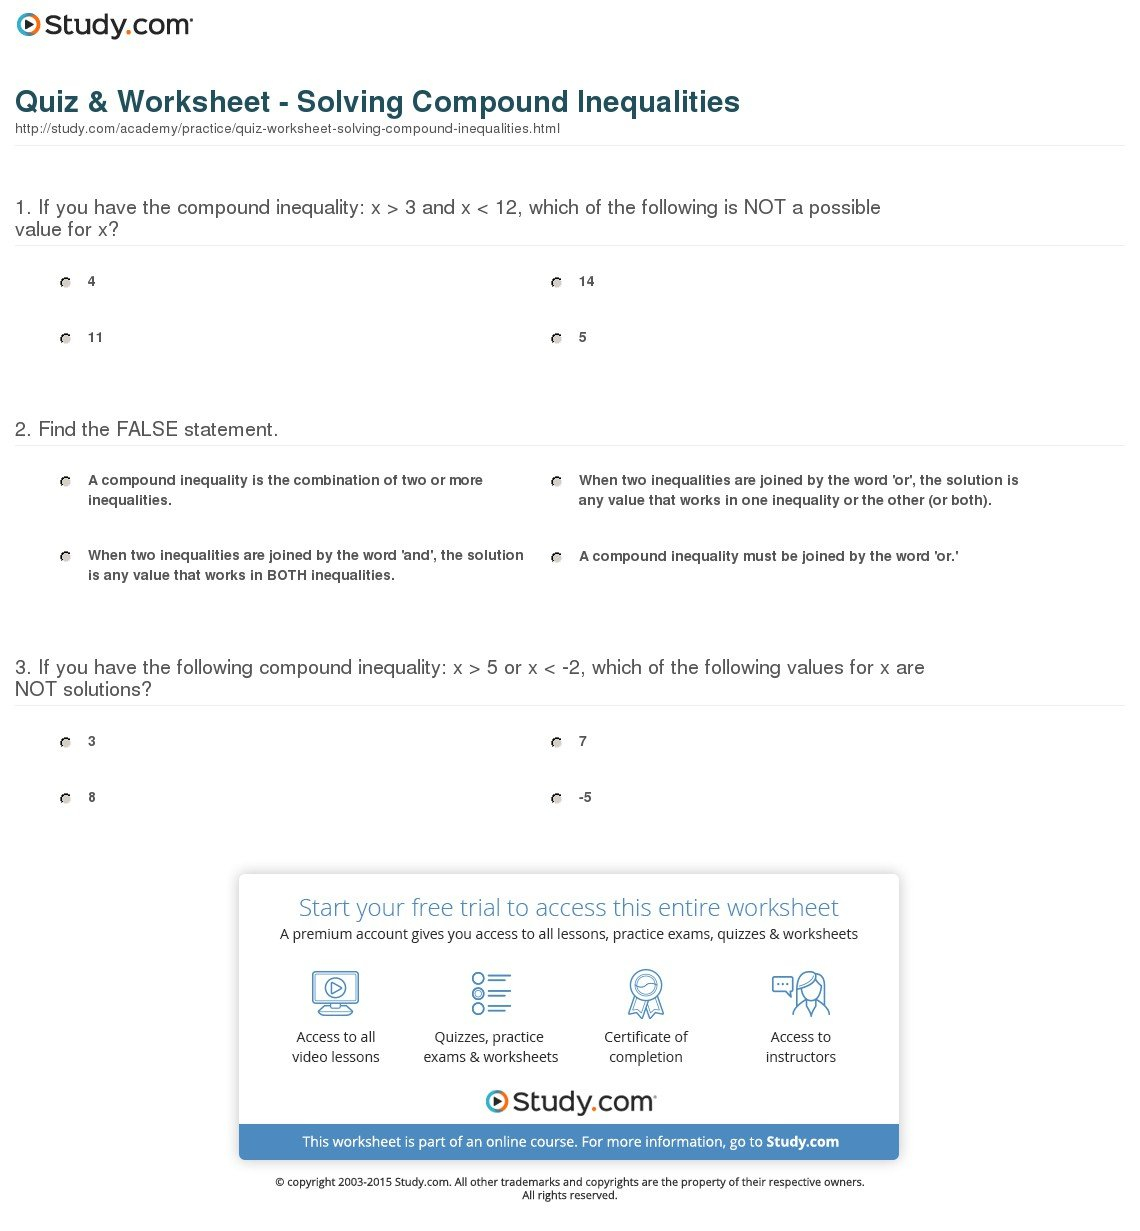 Compound Inequalities Worksheet Answers